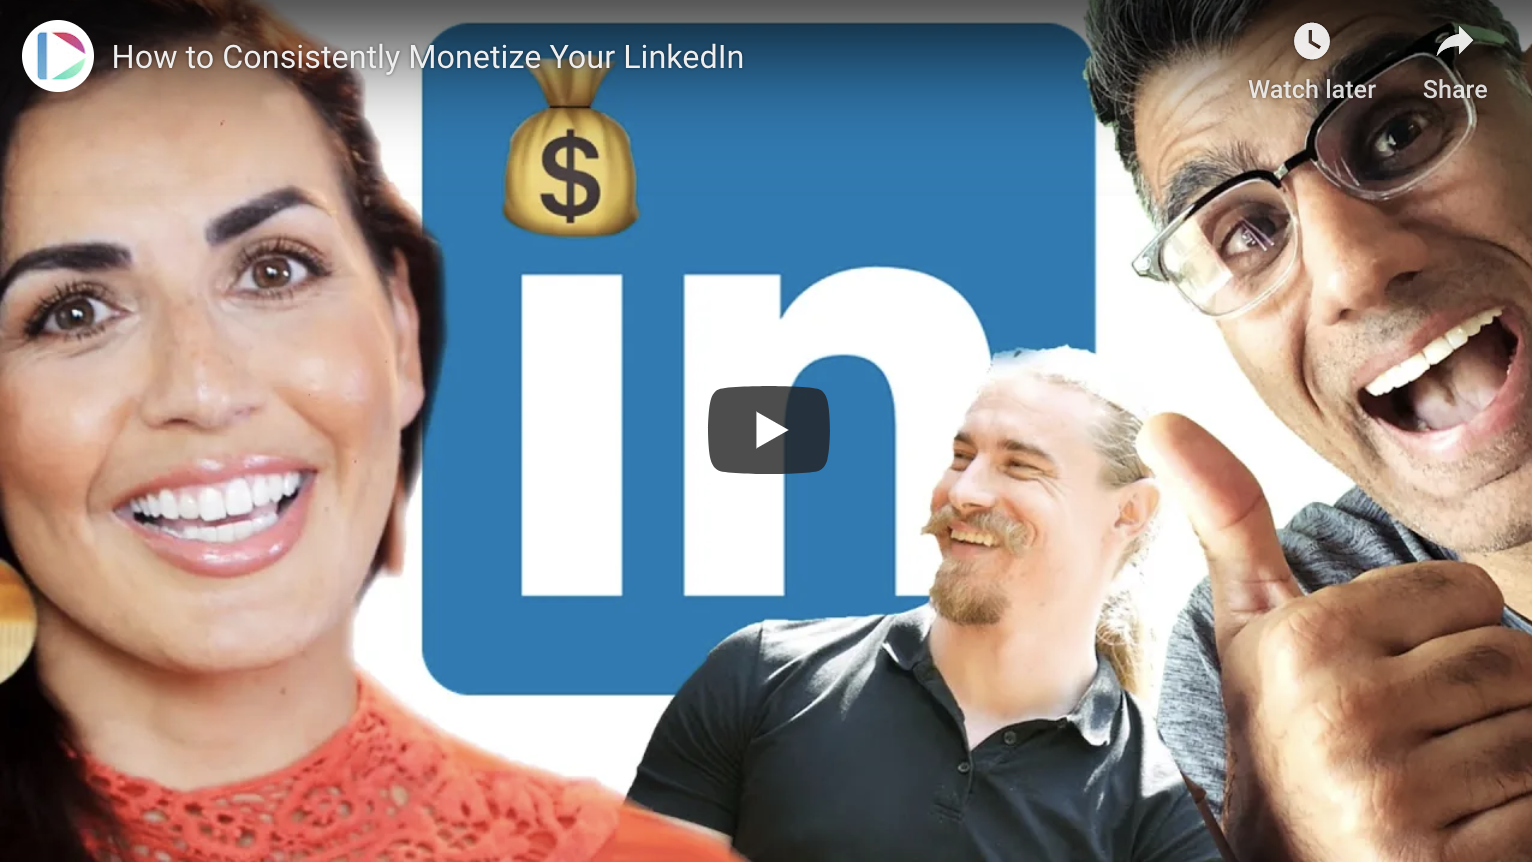 How to Consistently Monetize Your LinkedIn